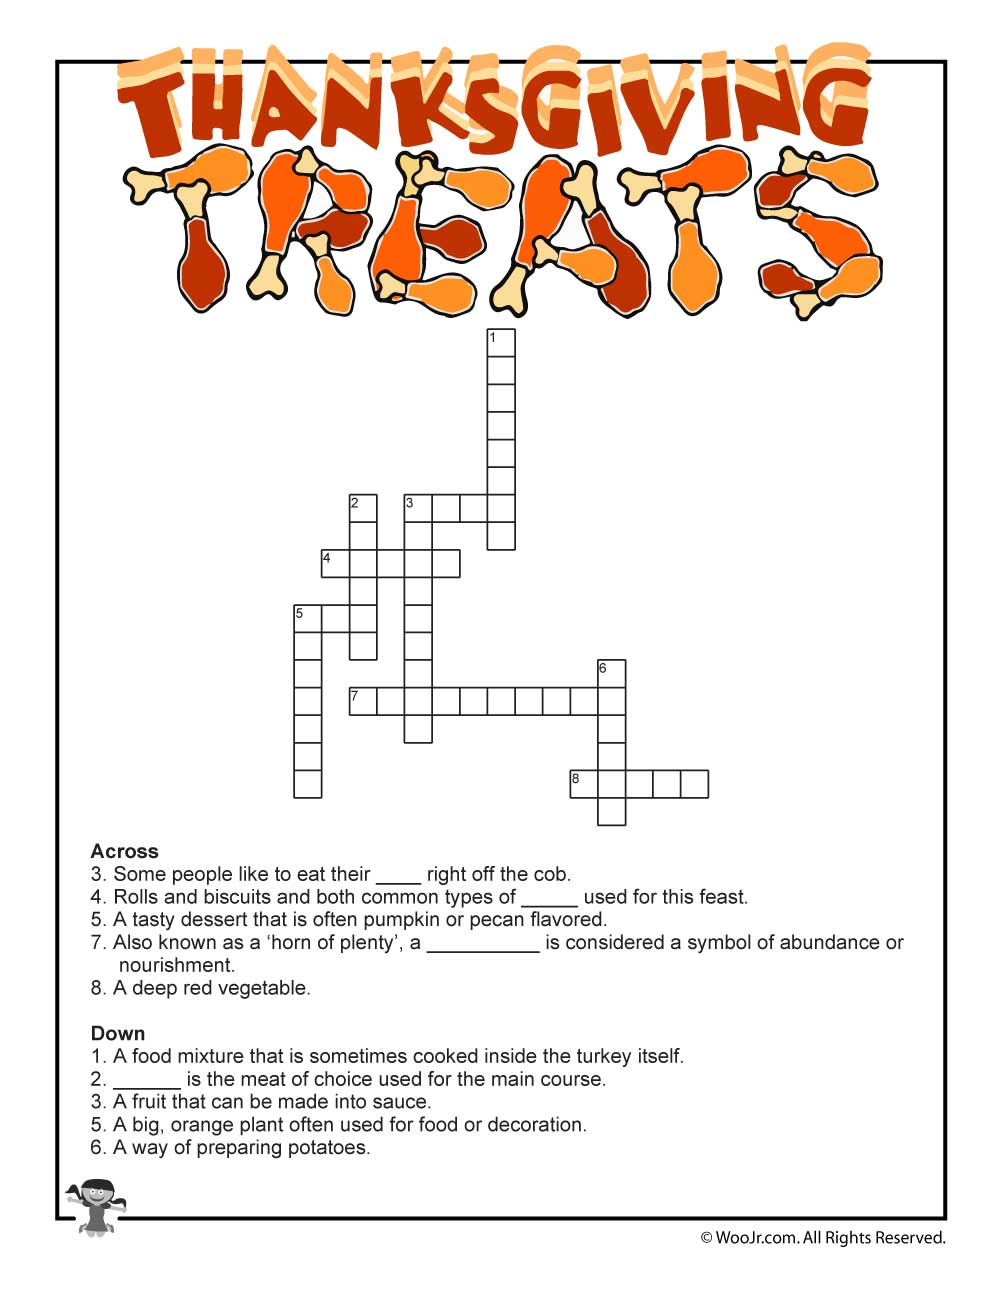 Thanksgiving Crossword Puzzle | Woo! Jr. Kids Activities - Thanksgiving Crossword Puzzle Printable